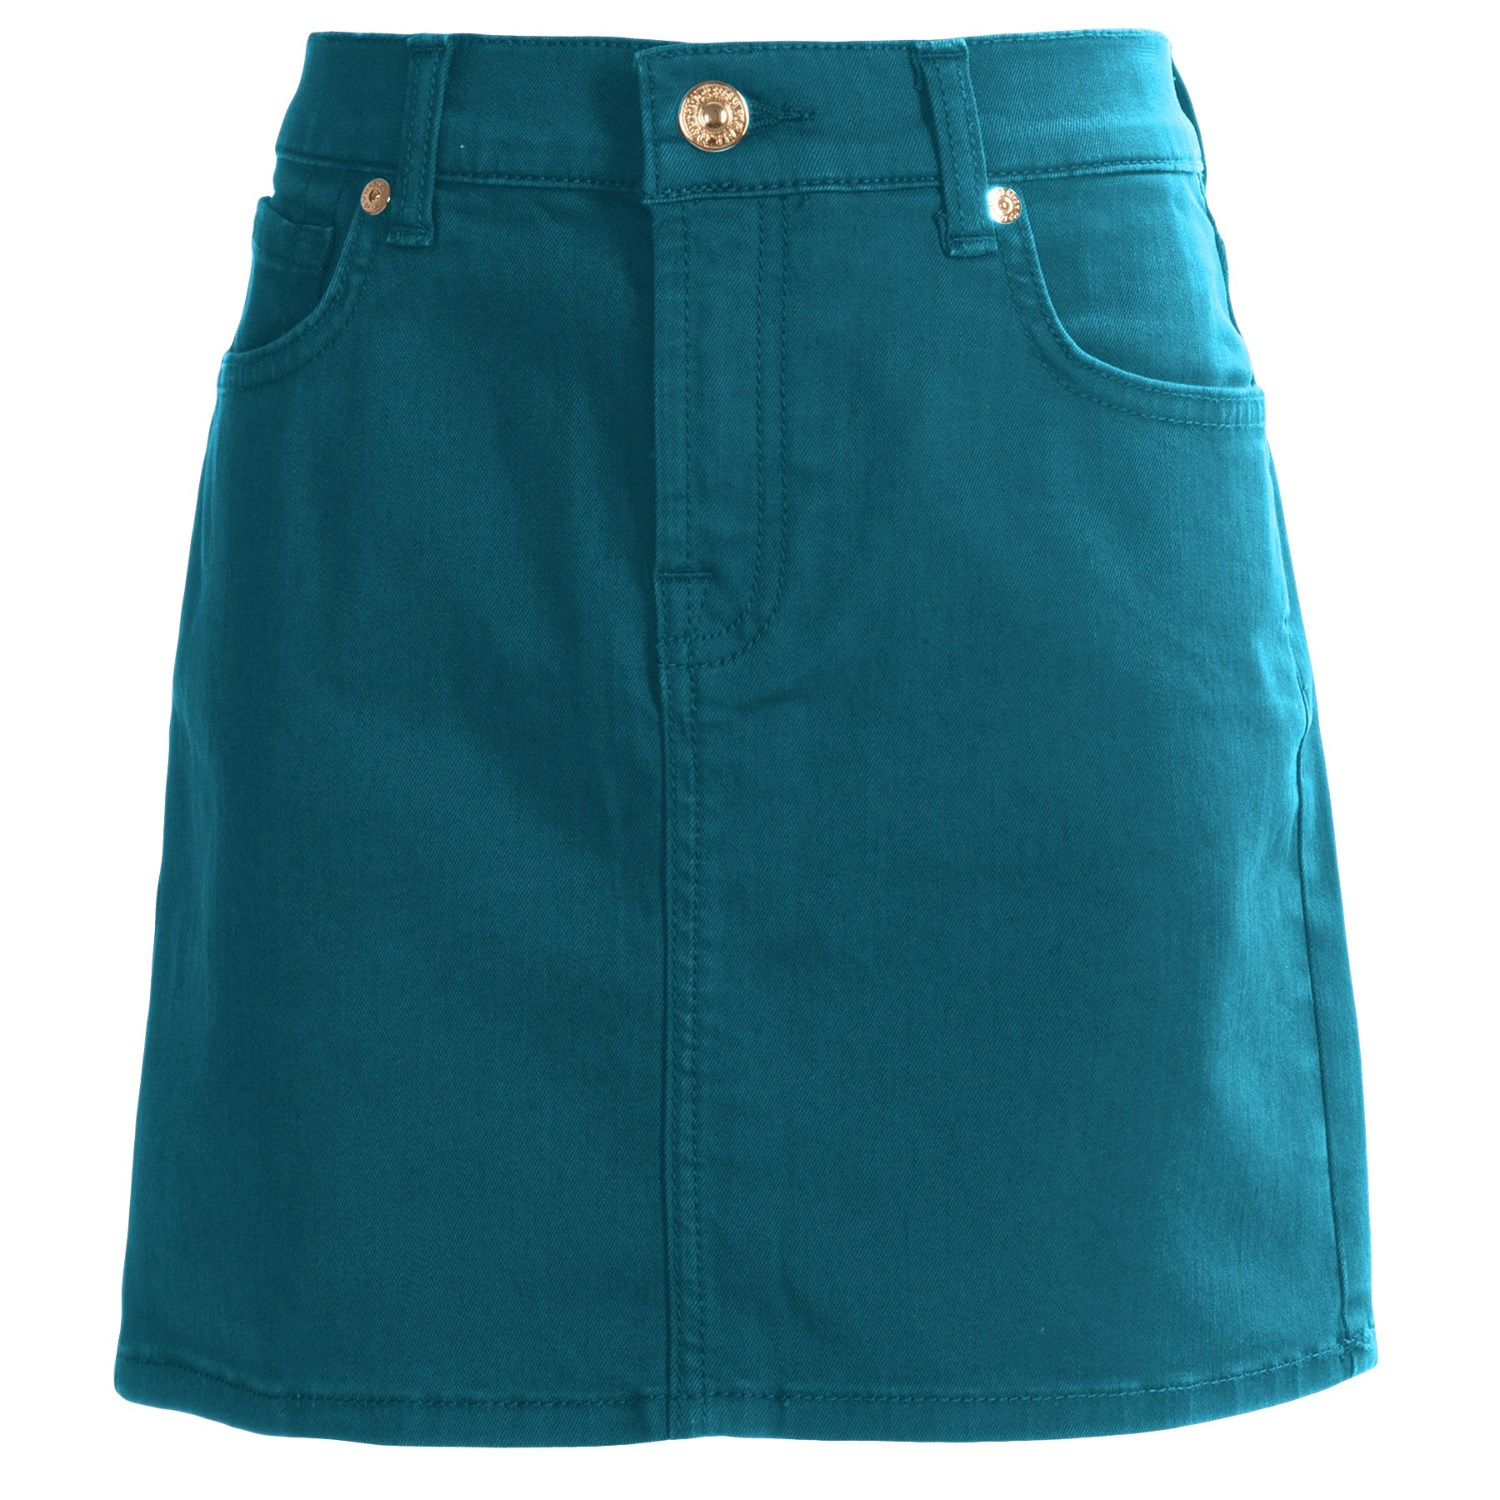 7 for all mankind cotton colored denim skirt for big